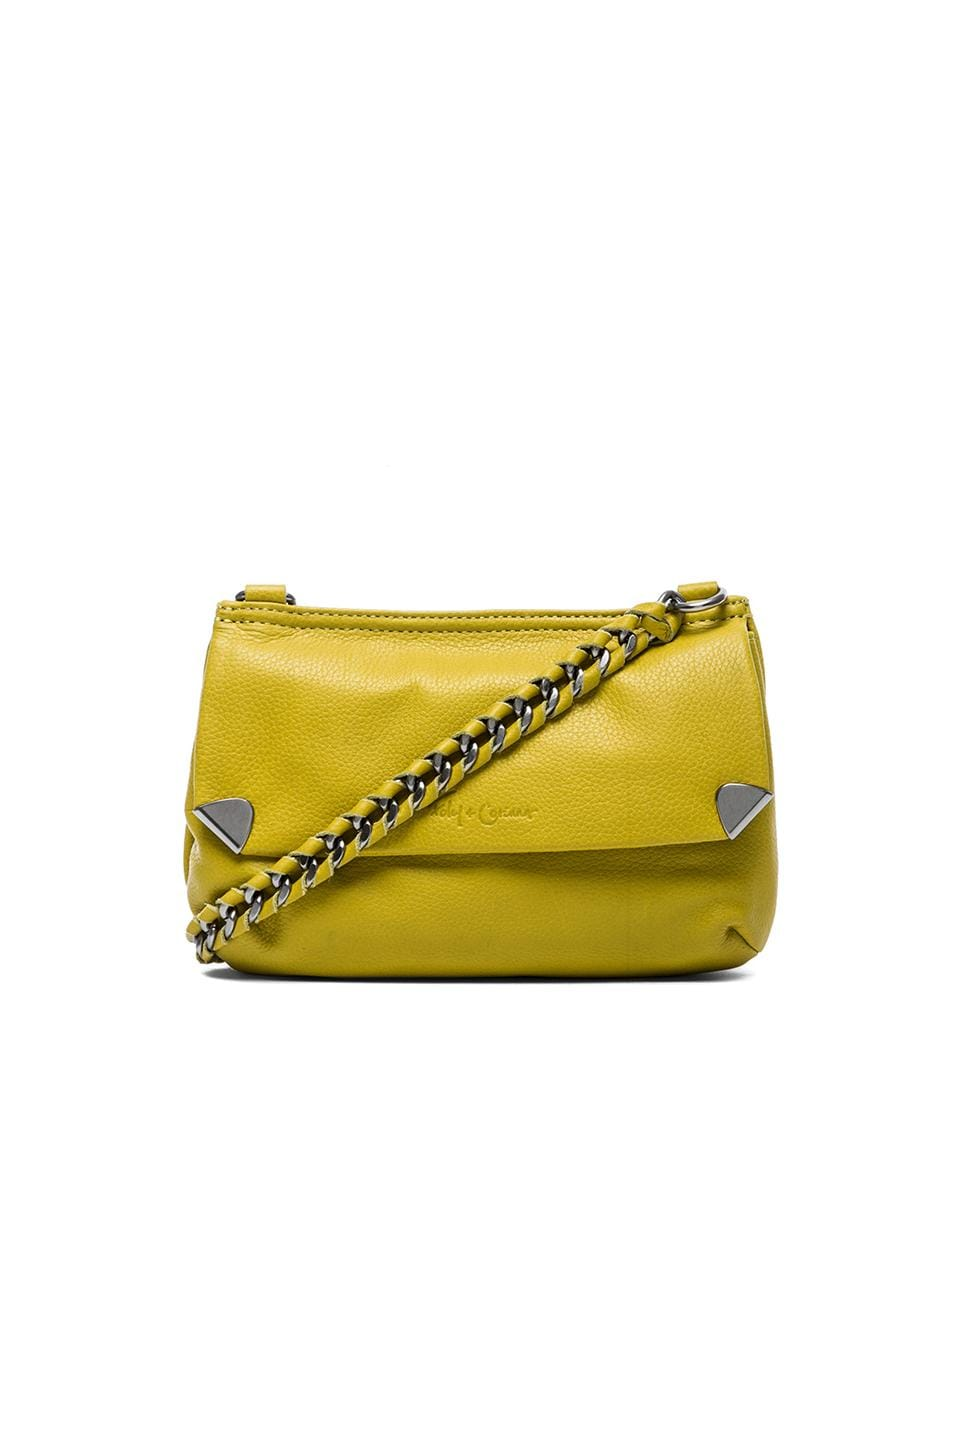 Foley + Corinna Unchained Crossbody in Lime